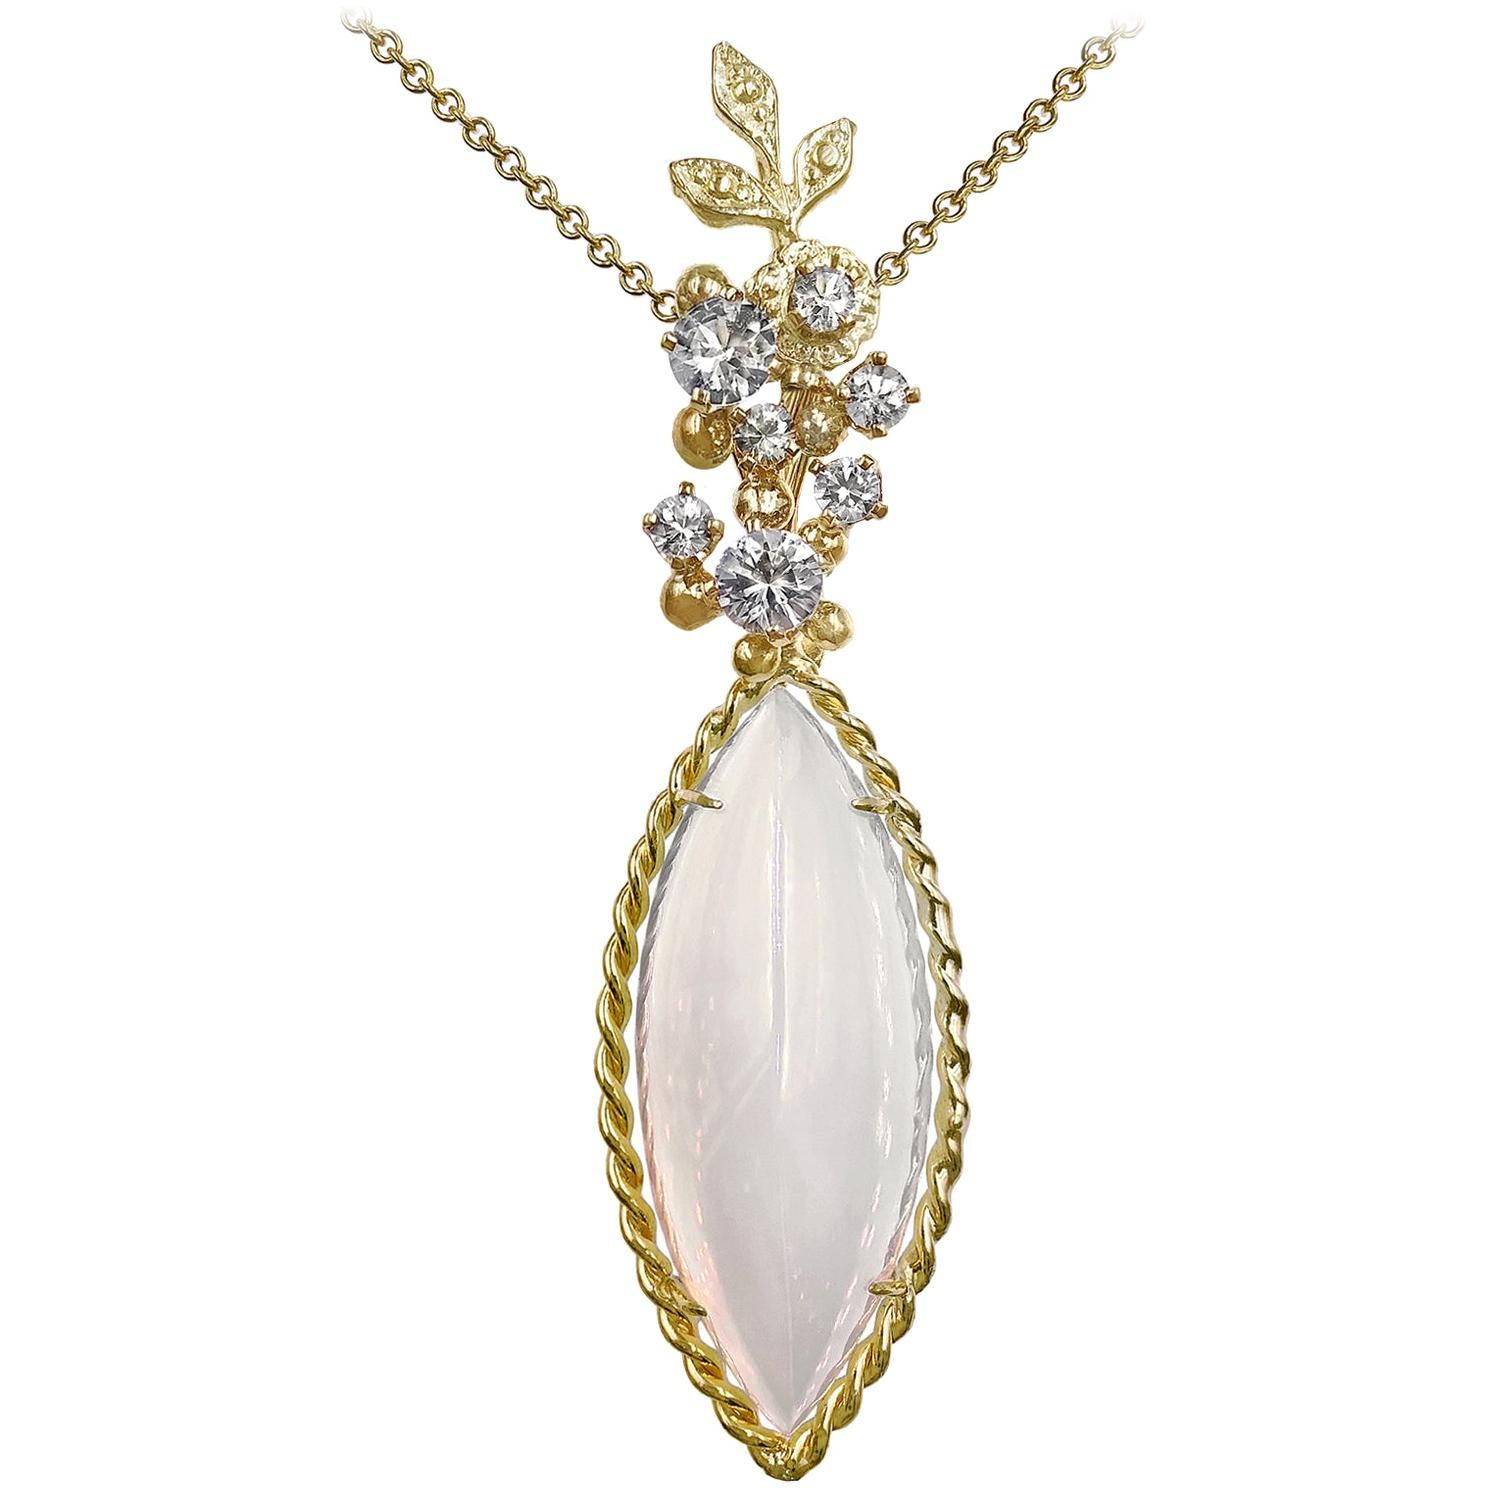 Russell Trusso Glowing Marquise Agate Chalcedony White Sapphire Gold Necklace